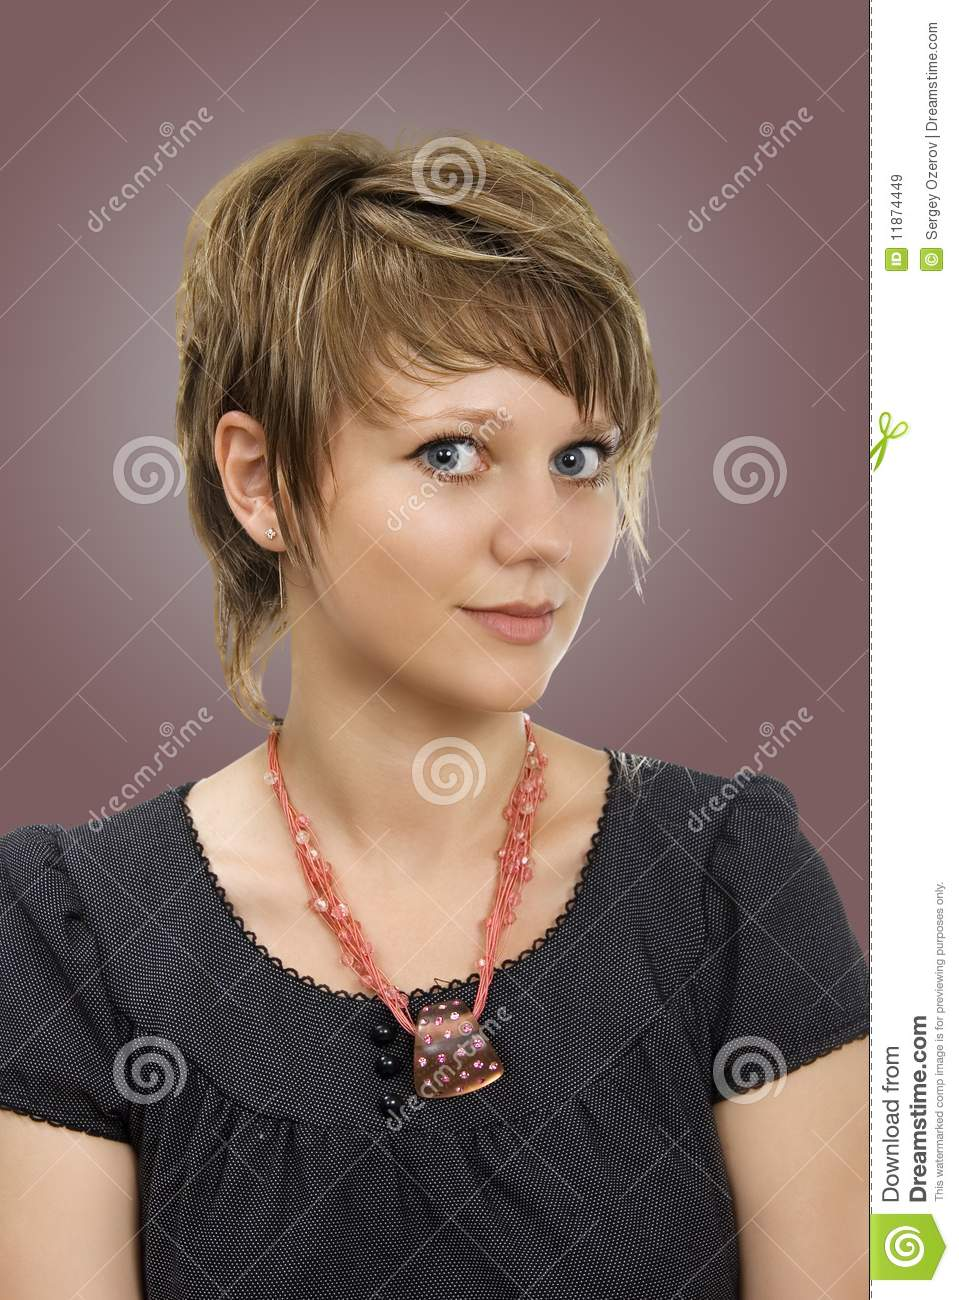 Coiffure 7 Stock Image Image Of Hairstyle Color Holding 11874449